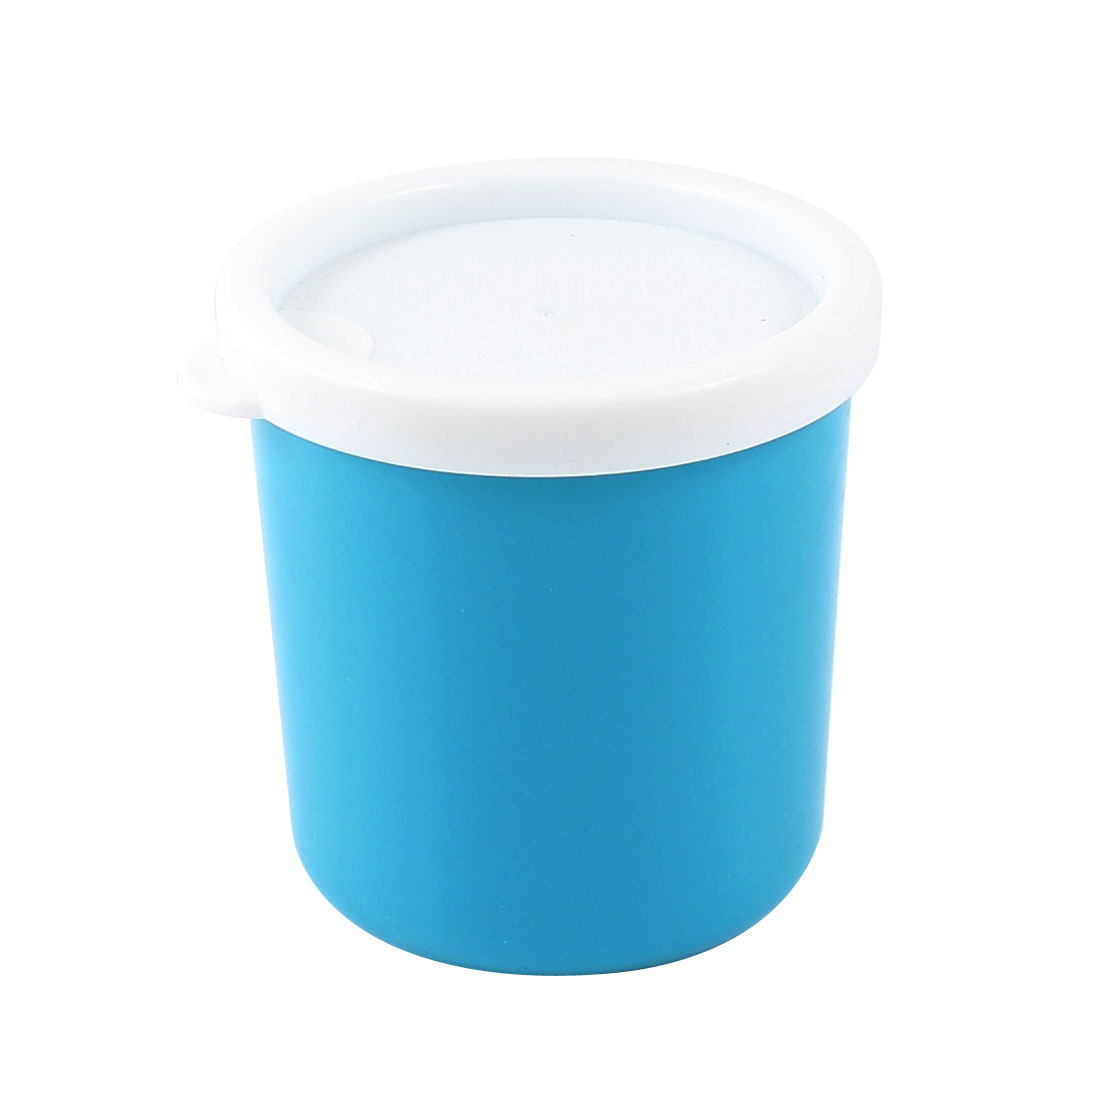 Home Washroom 210ml Capacity Drinking Water Mug Cup Teal Blue w Cap